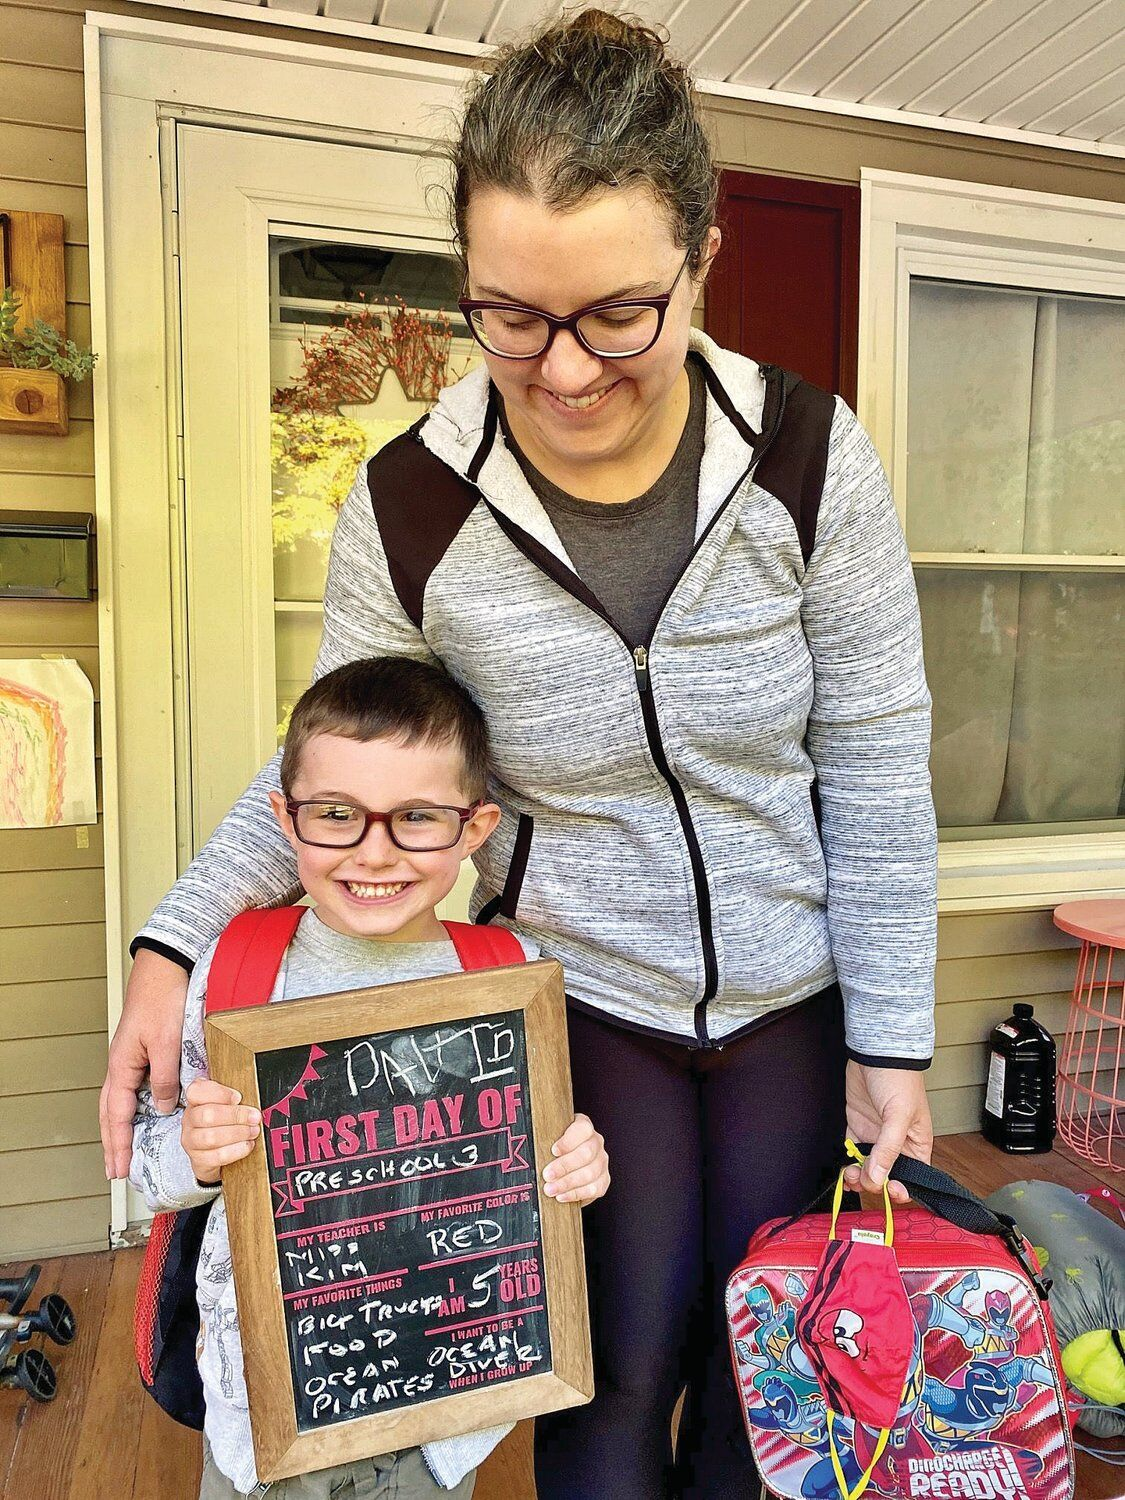 Lindsey Hollenbaugh | Quarantined with kids: 171 days together, but who's counting?